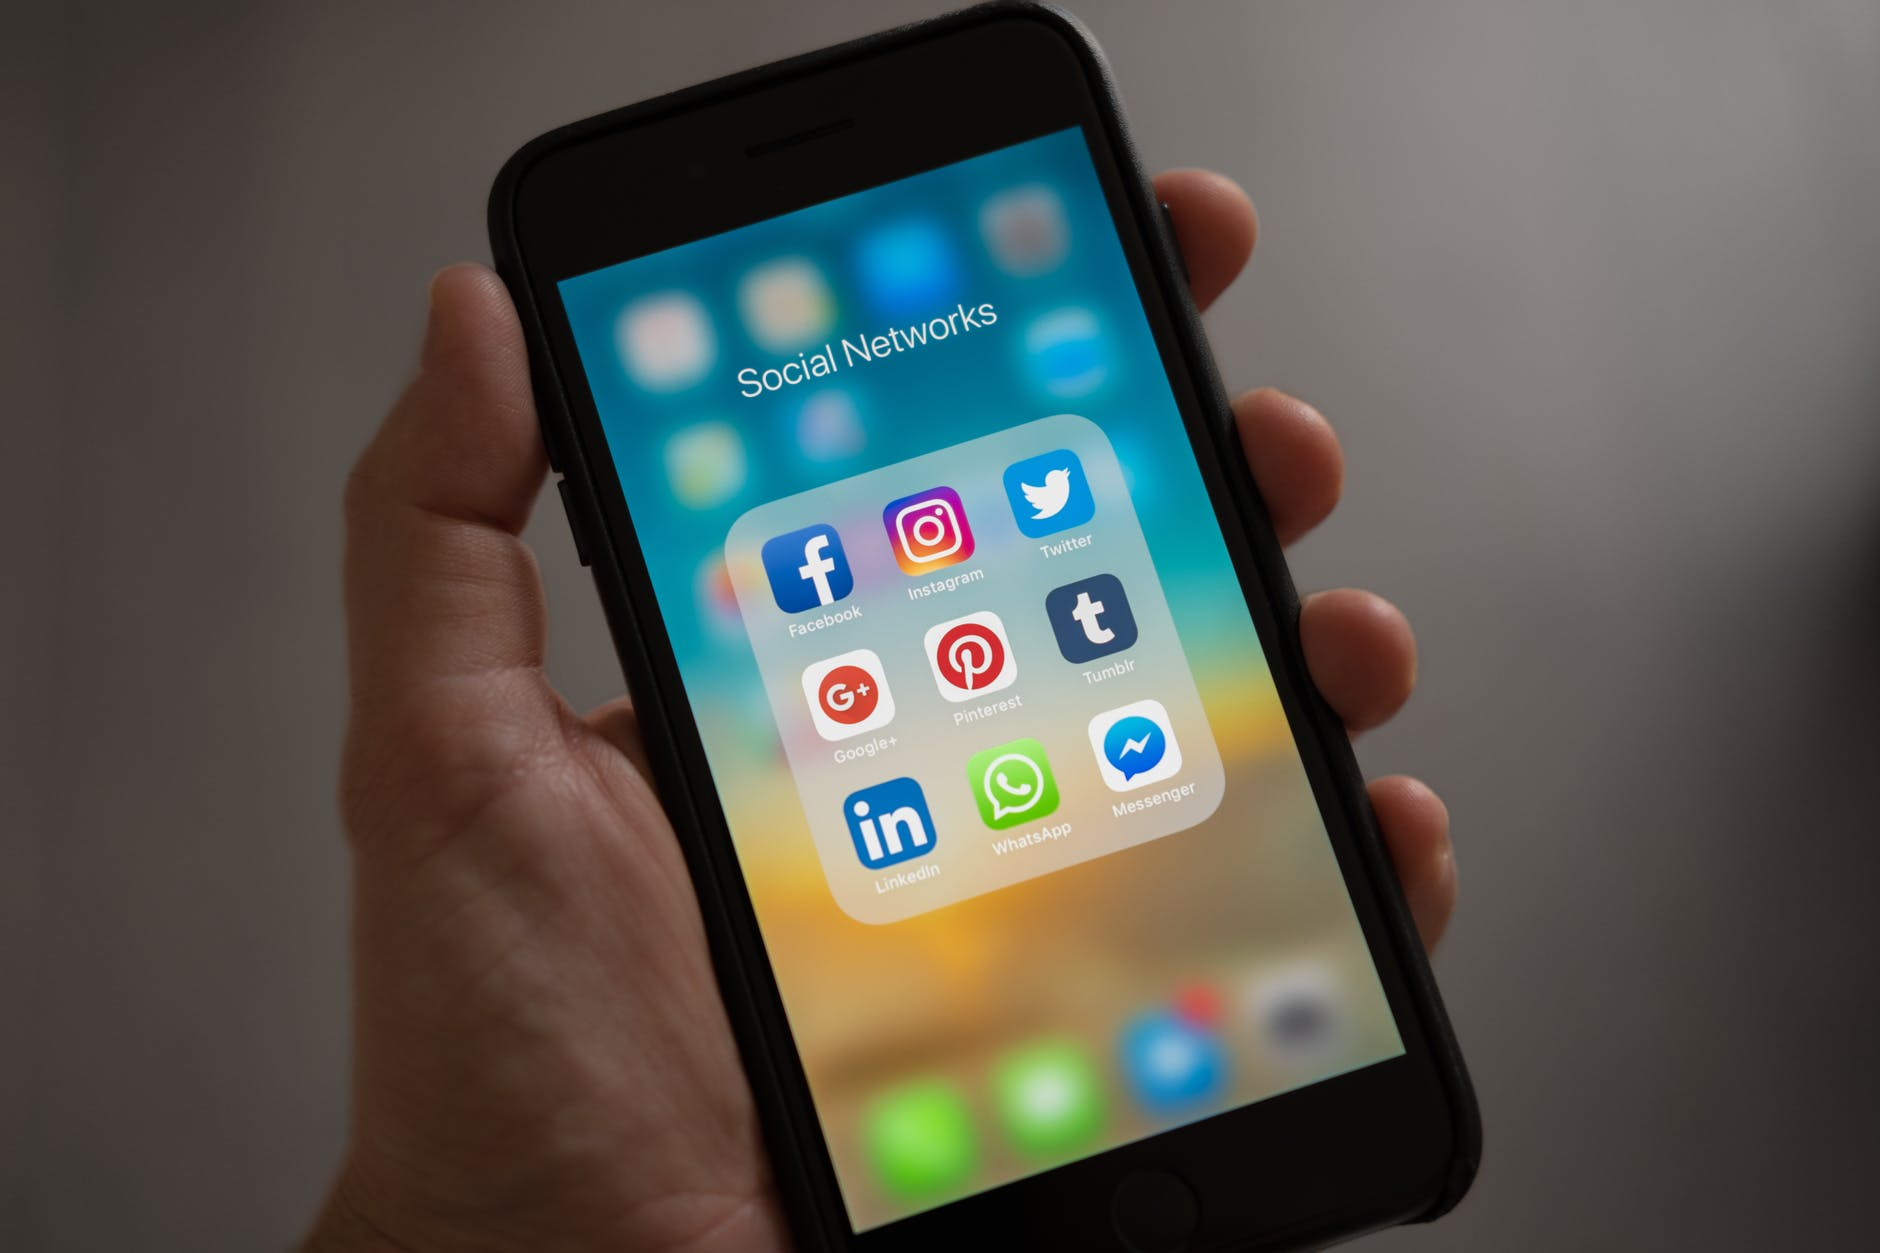 Phone showing social media apps in hand